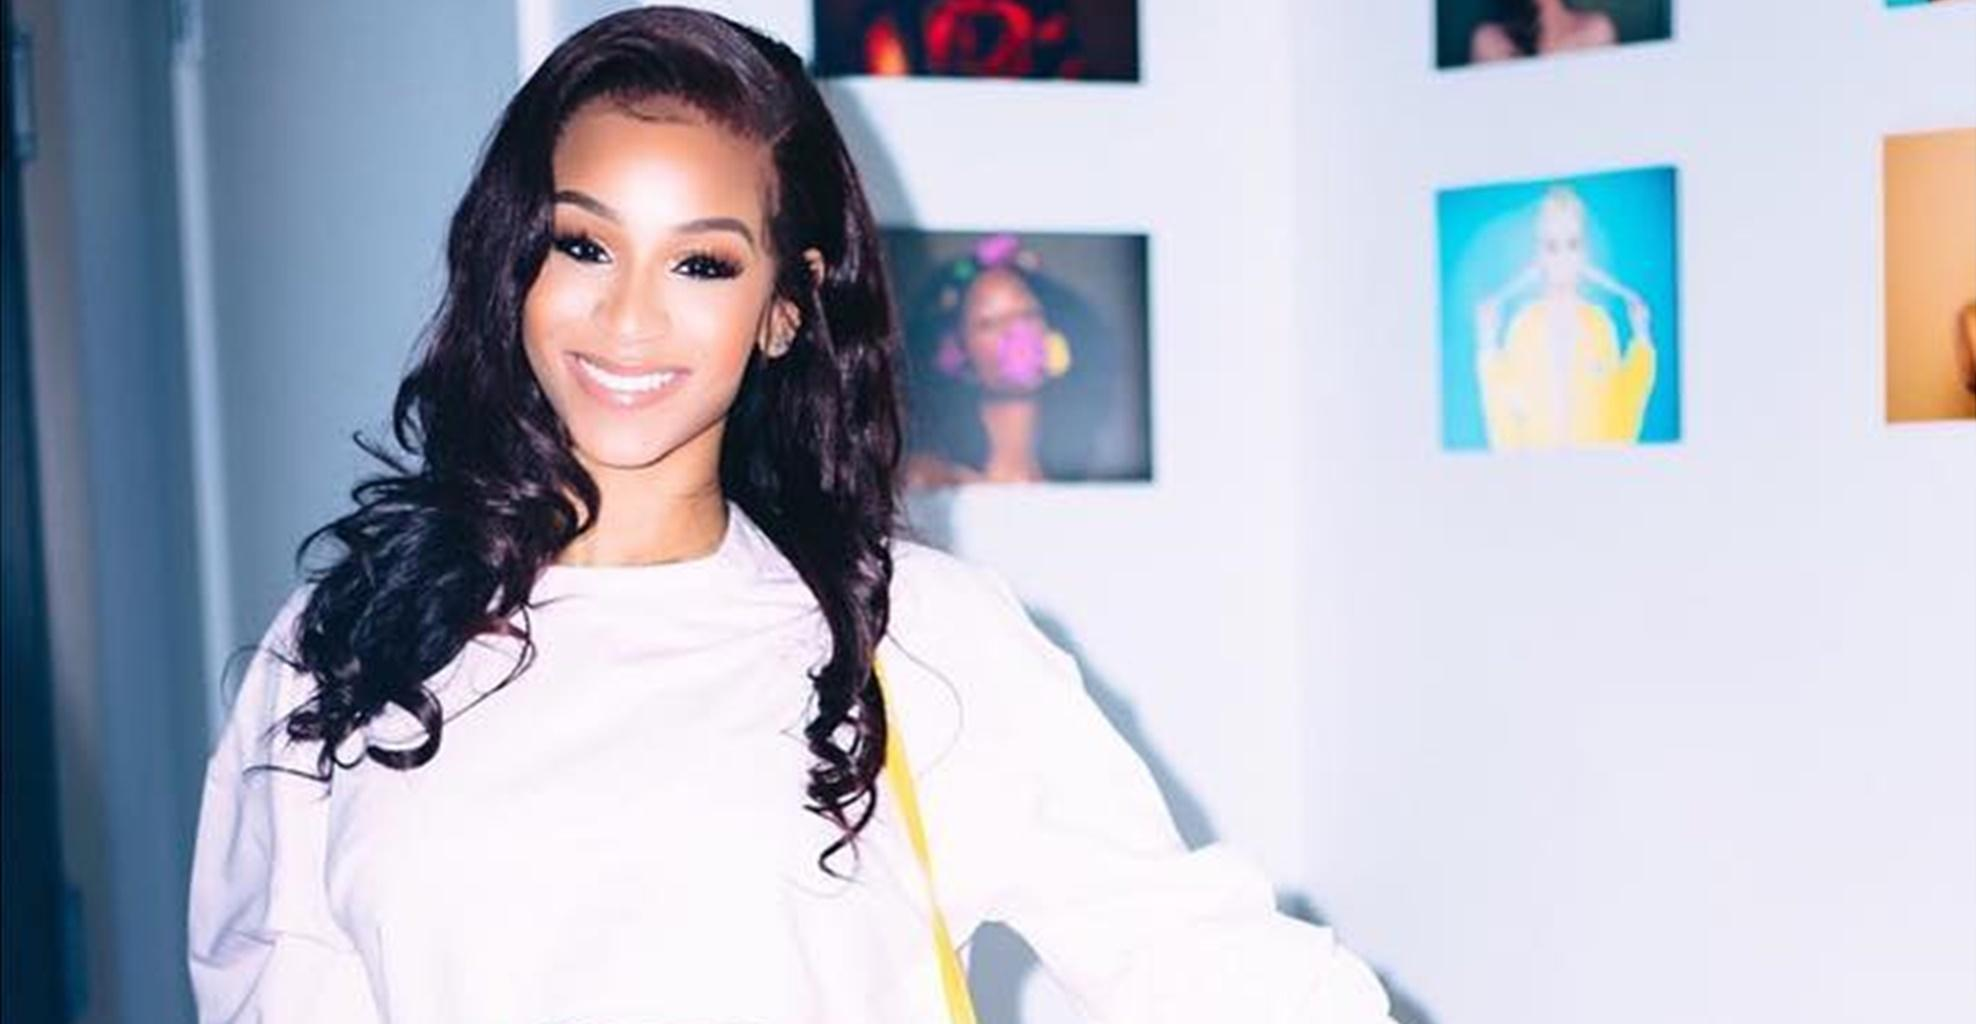 T.I.'s Daughter, Deyjah Harris Claps Back At A Man Who Commented On Her Looks And Triggers A Debate Among Fans